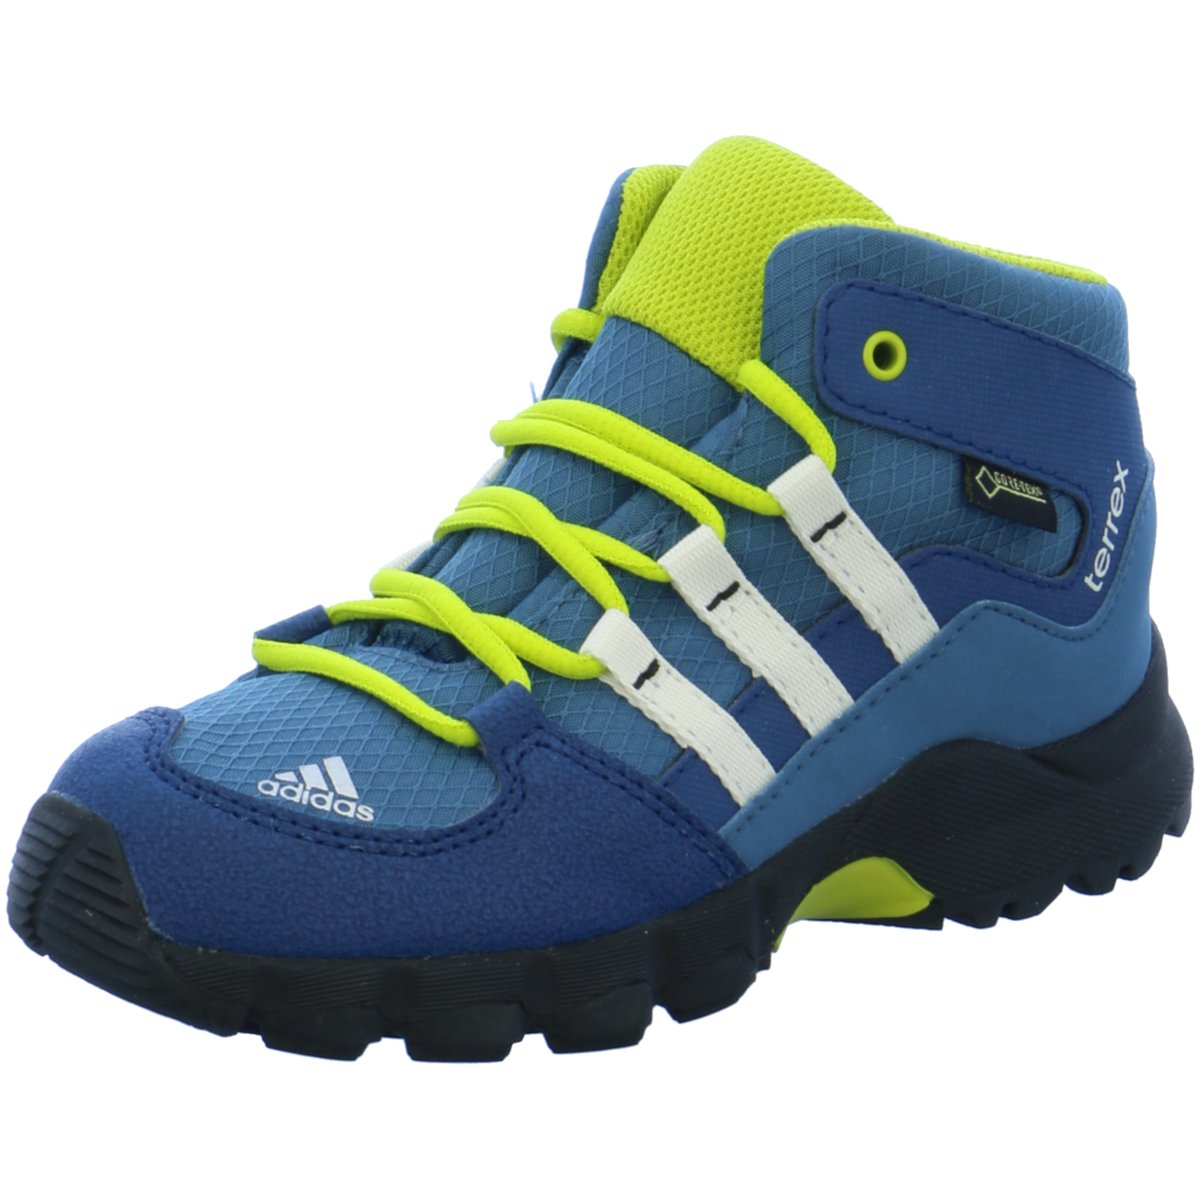 cheap for discount 31733 25cc9 Details zu adidas Kinder Sportschuhe BB1404 Terrex mid blau 149360